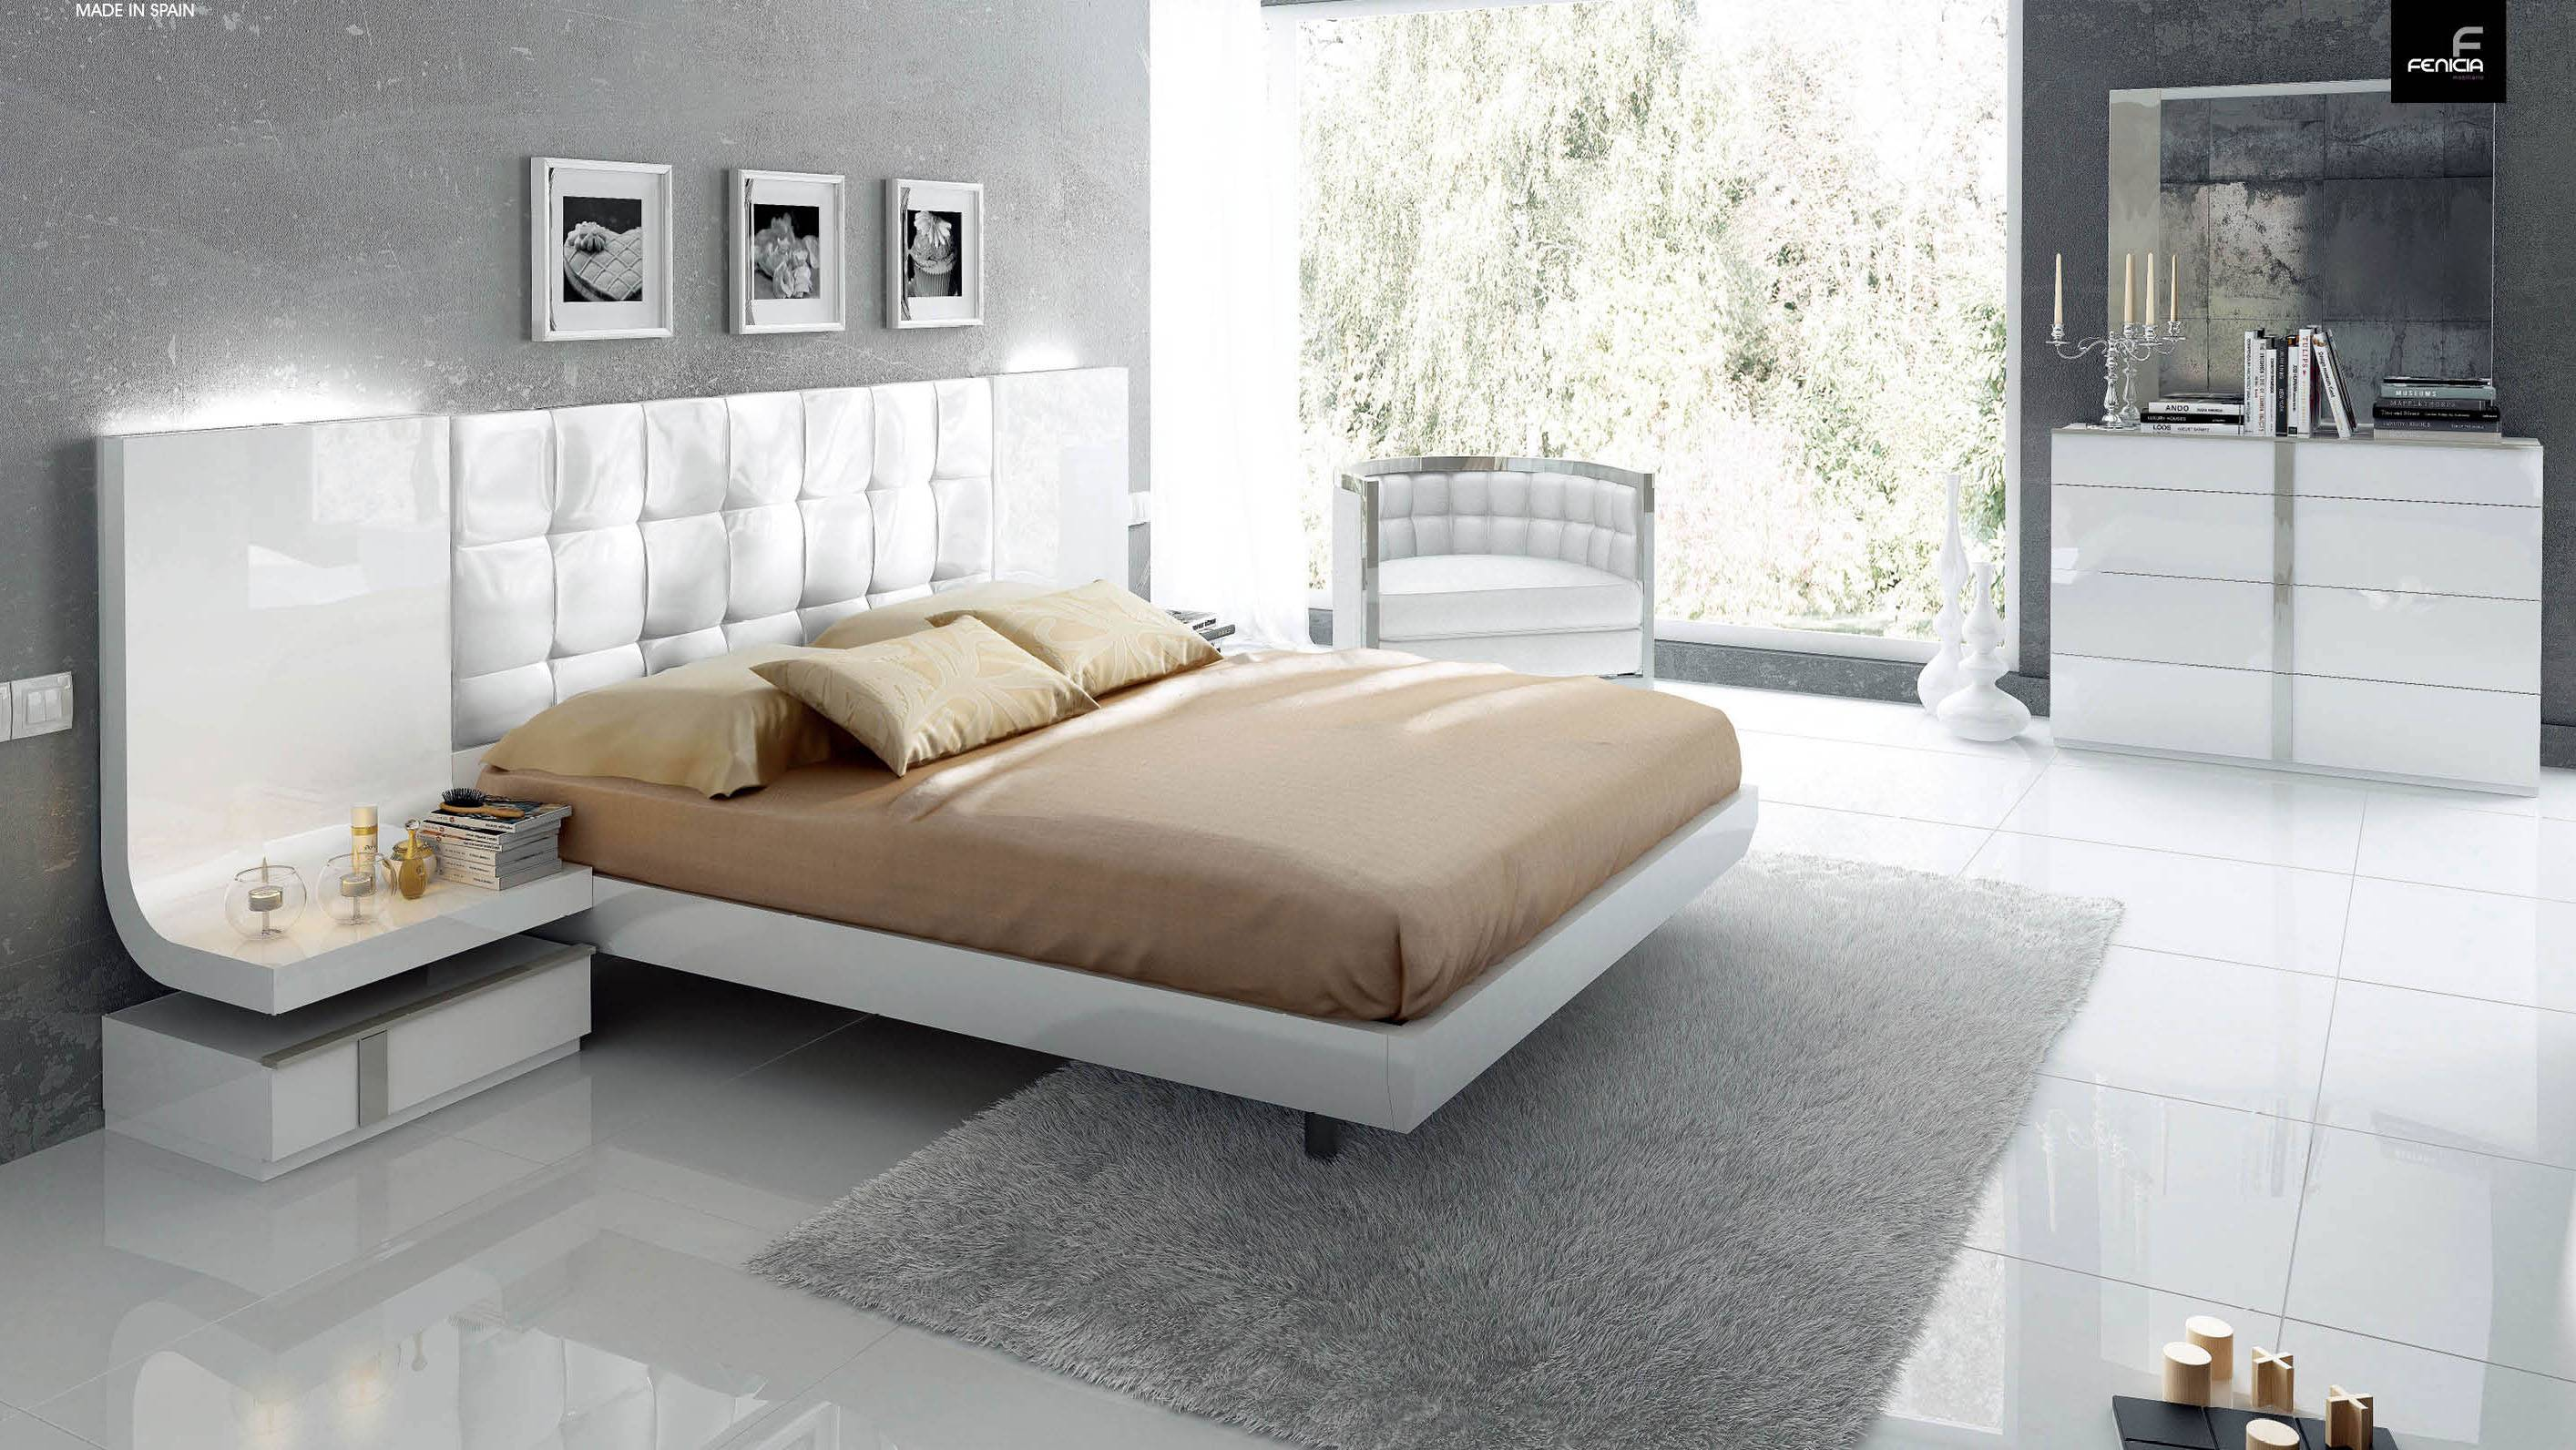 stylish wood elite modern bedroom set with extra storage 10655 | white luxury padded headboard lacquered bedroom esfgranada